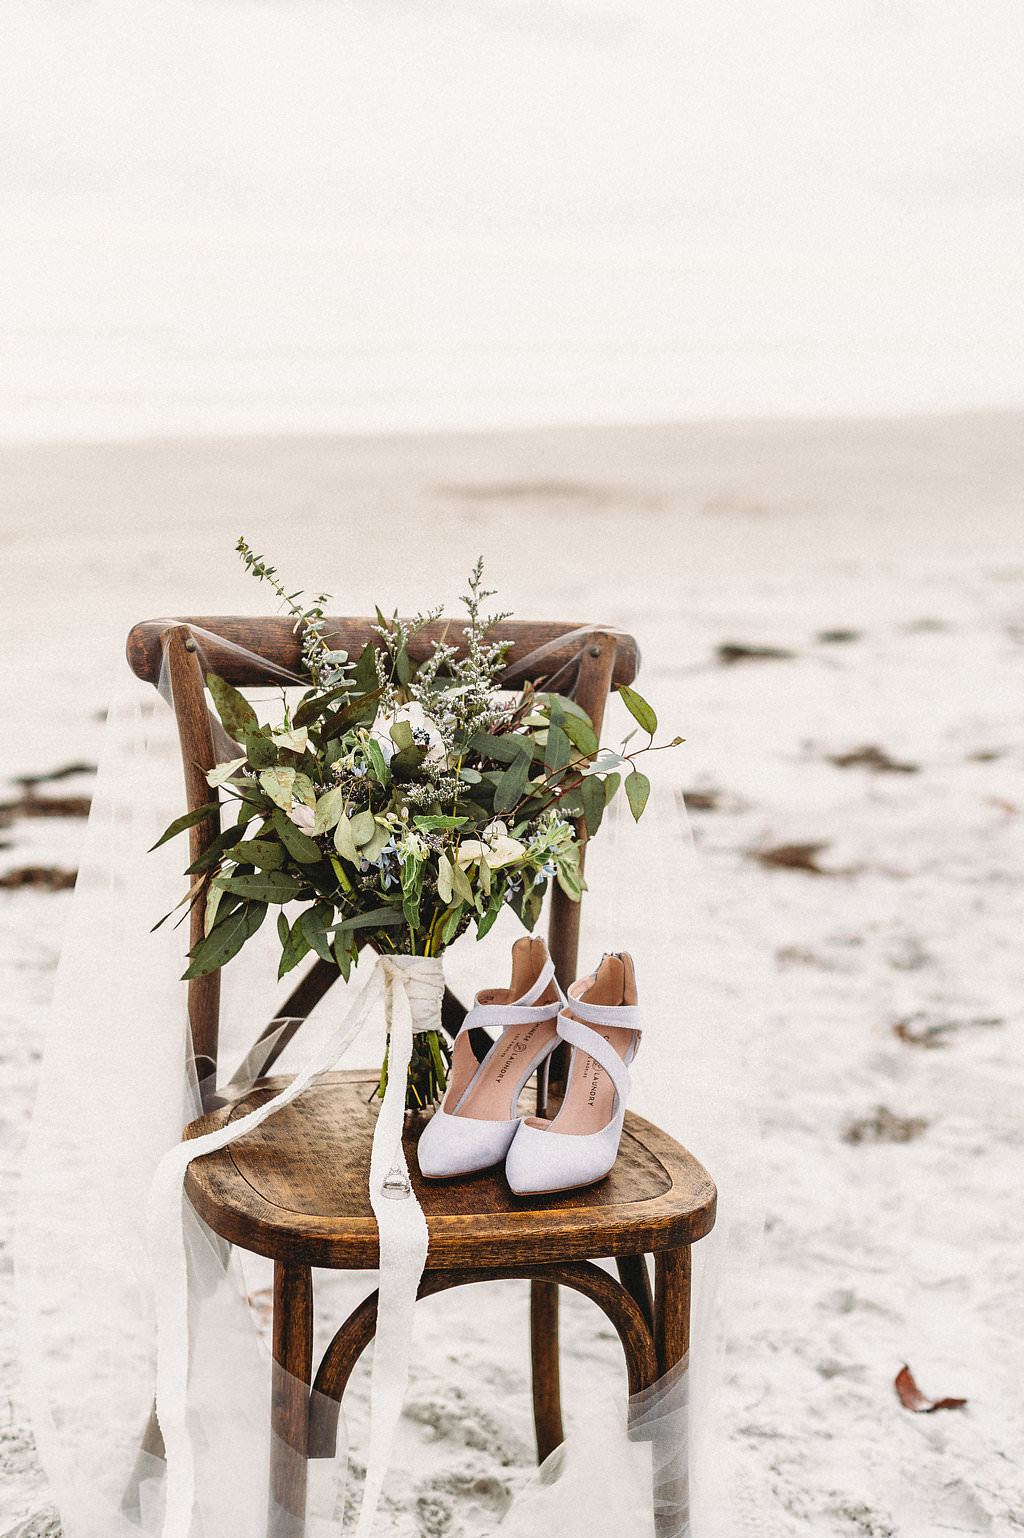 Wooden Ceremony Chairs with Greenery and White Flower Bouquet, White Pointed Shoes, Wedding Rings and Veil on Sandy White St. Pete Beach Wedding